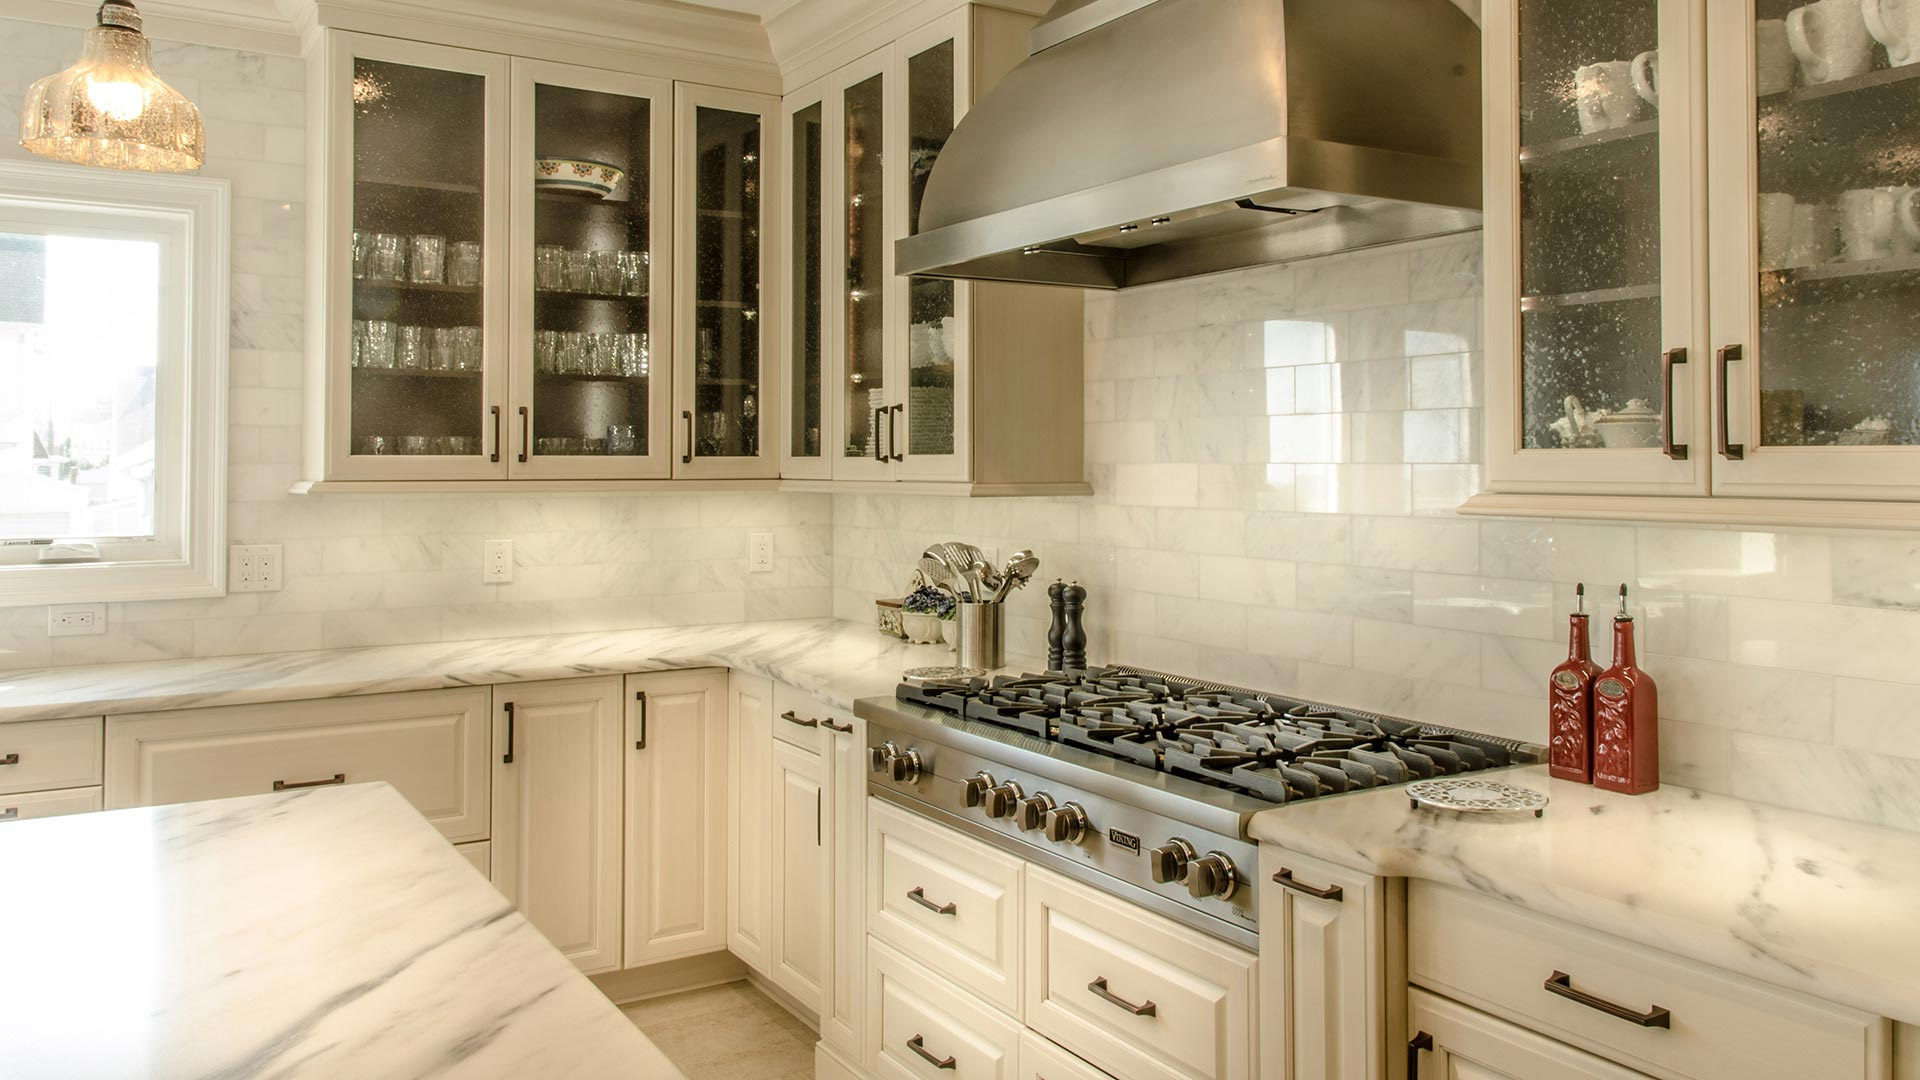 Traditional Kitchen - Princeton Avenue, Ventnor NJ